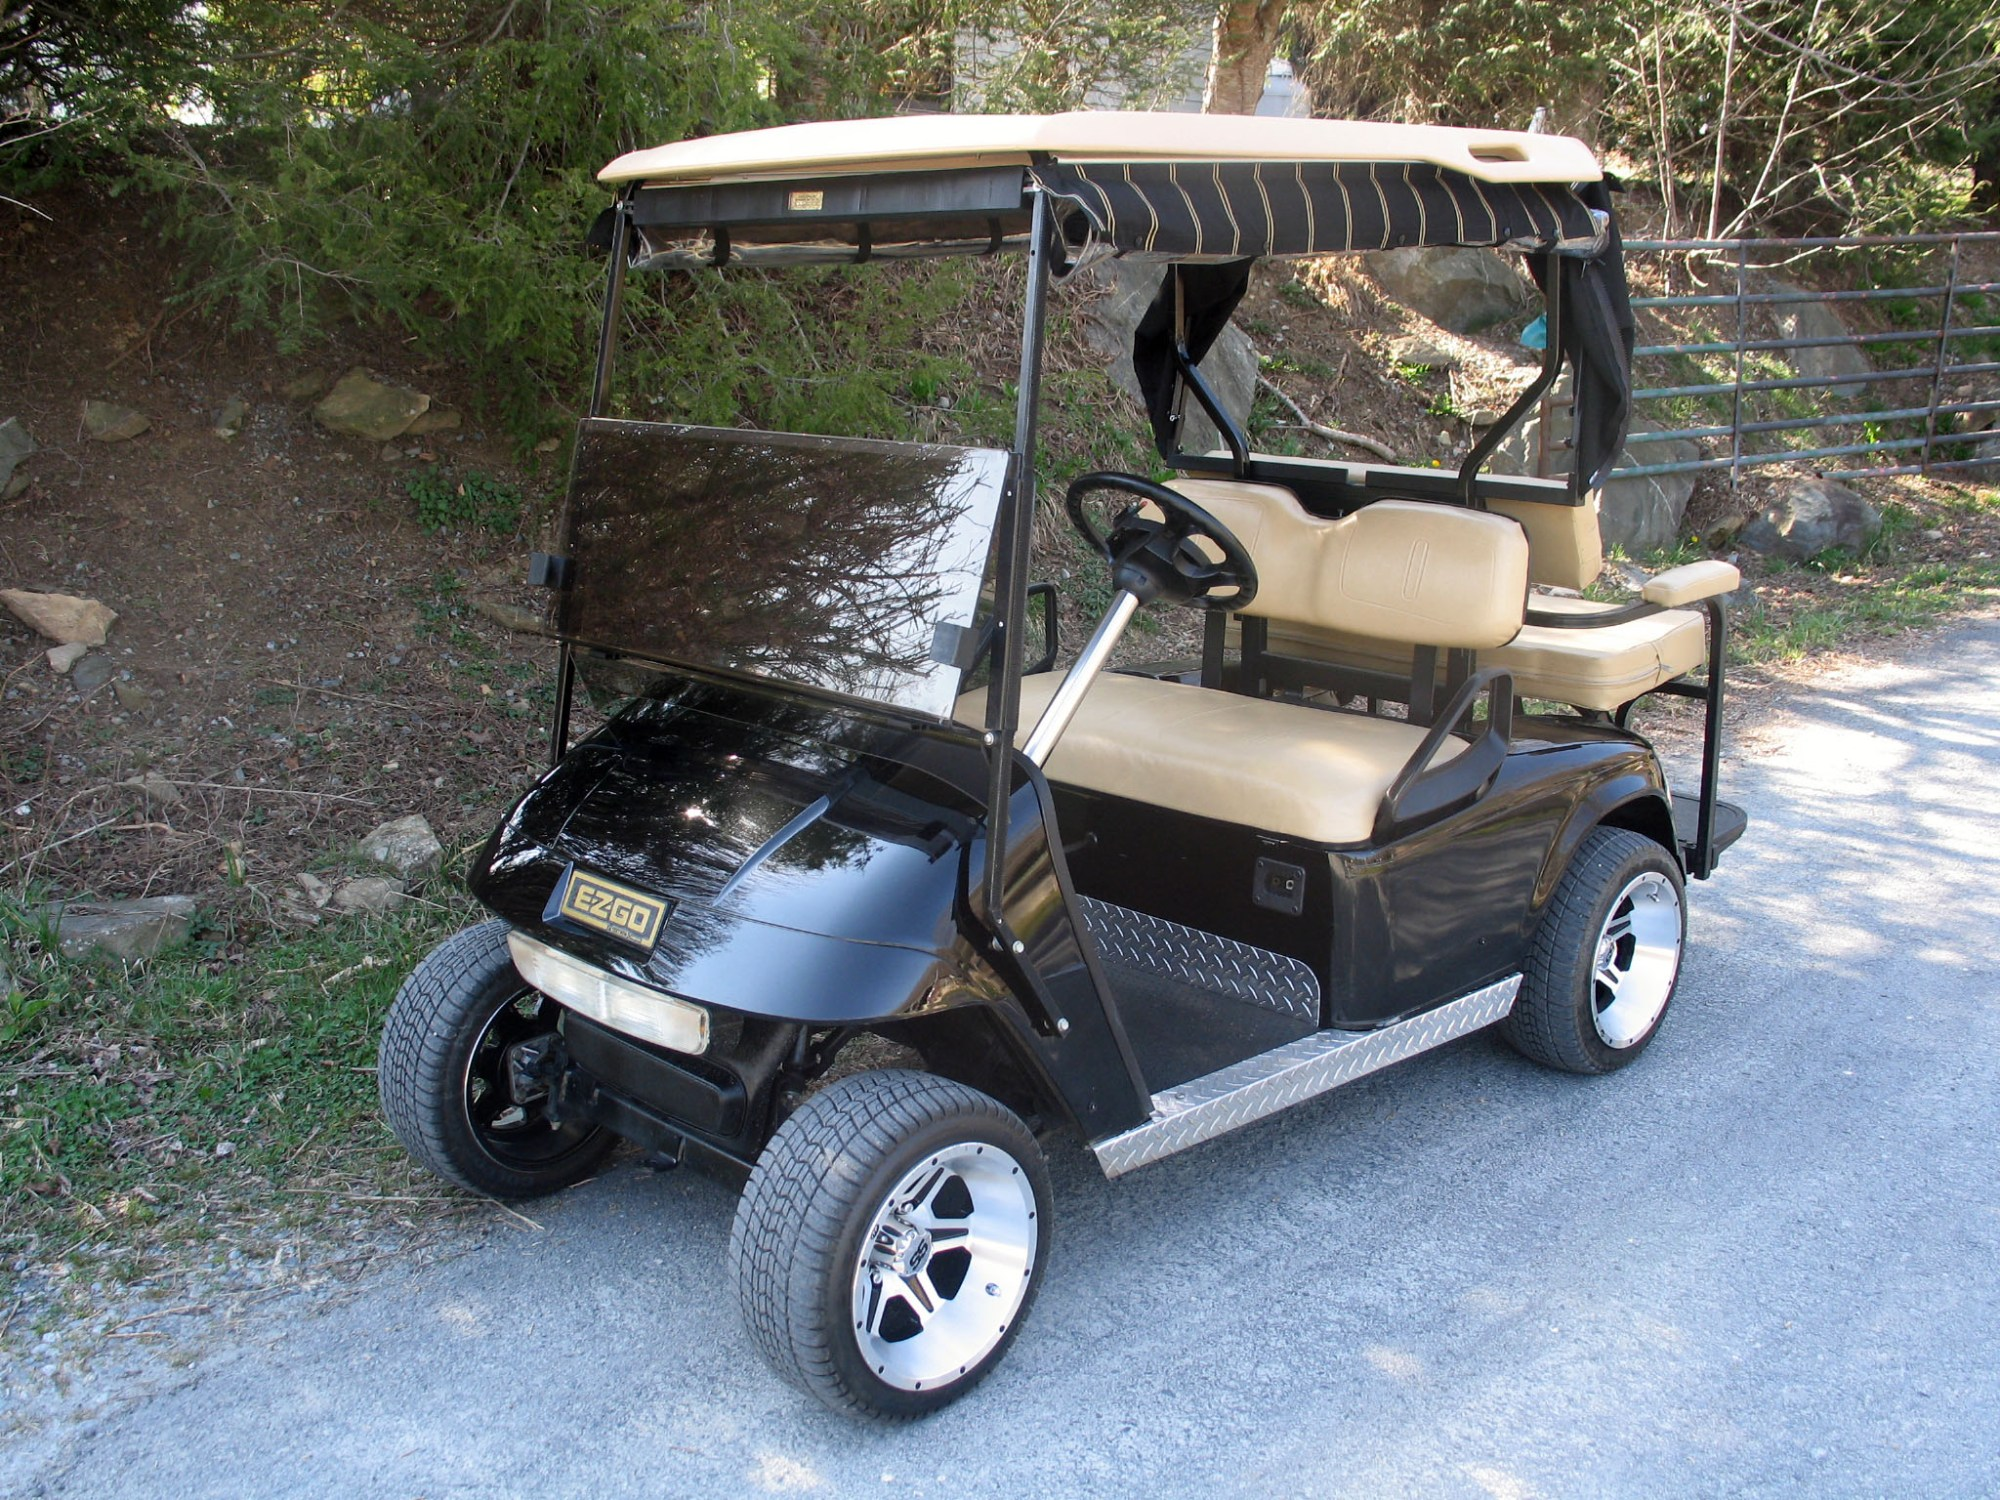 hight resolution of 2002 ez go golf cart wiring diagram wiring diagram centre 2008 ez go wiring diagram source ezgo rear axle